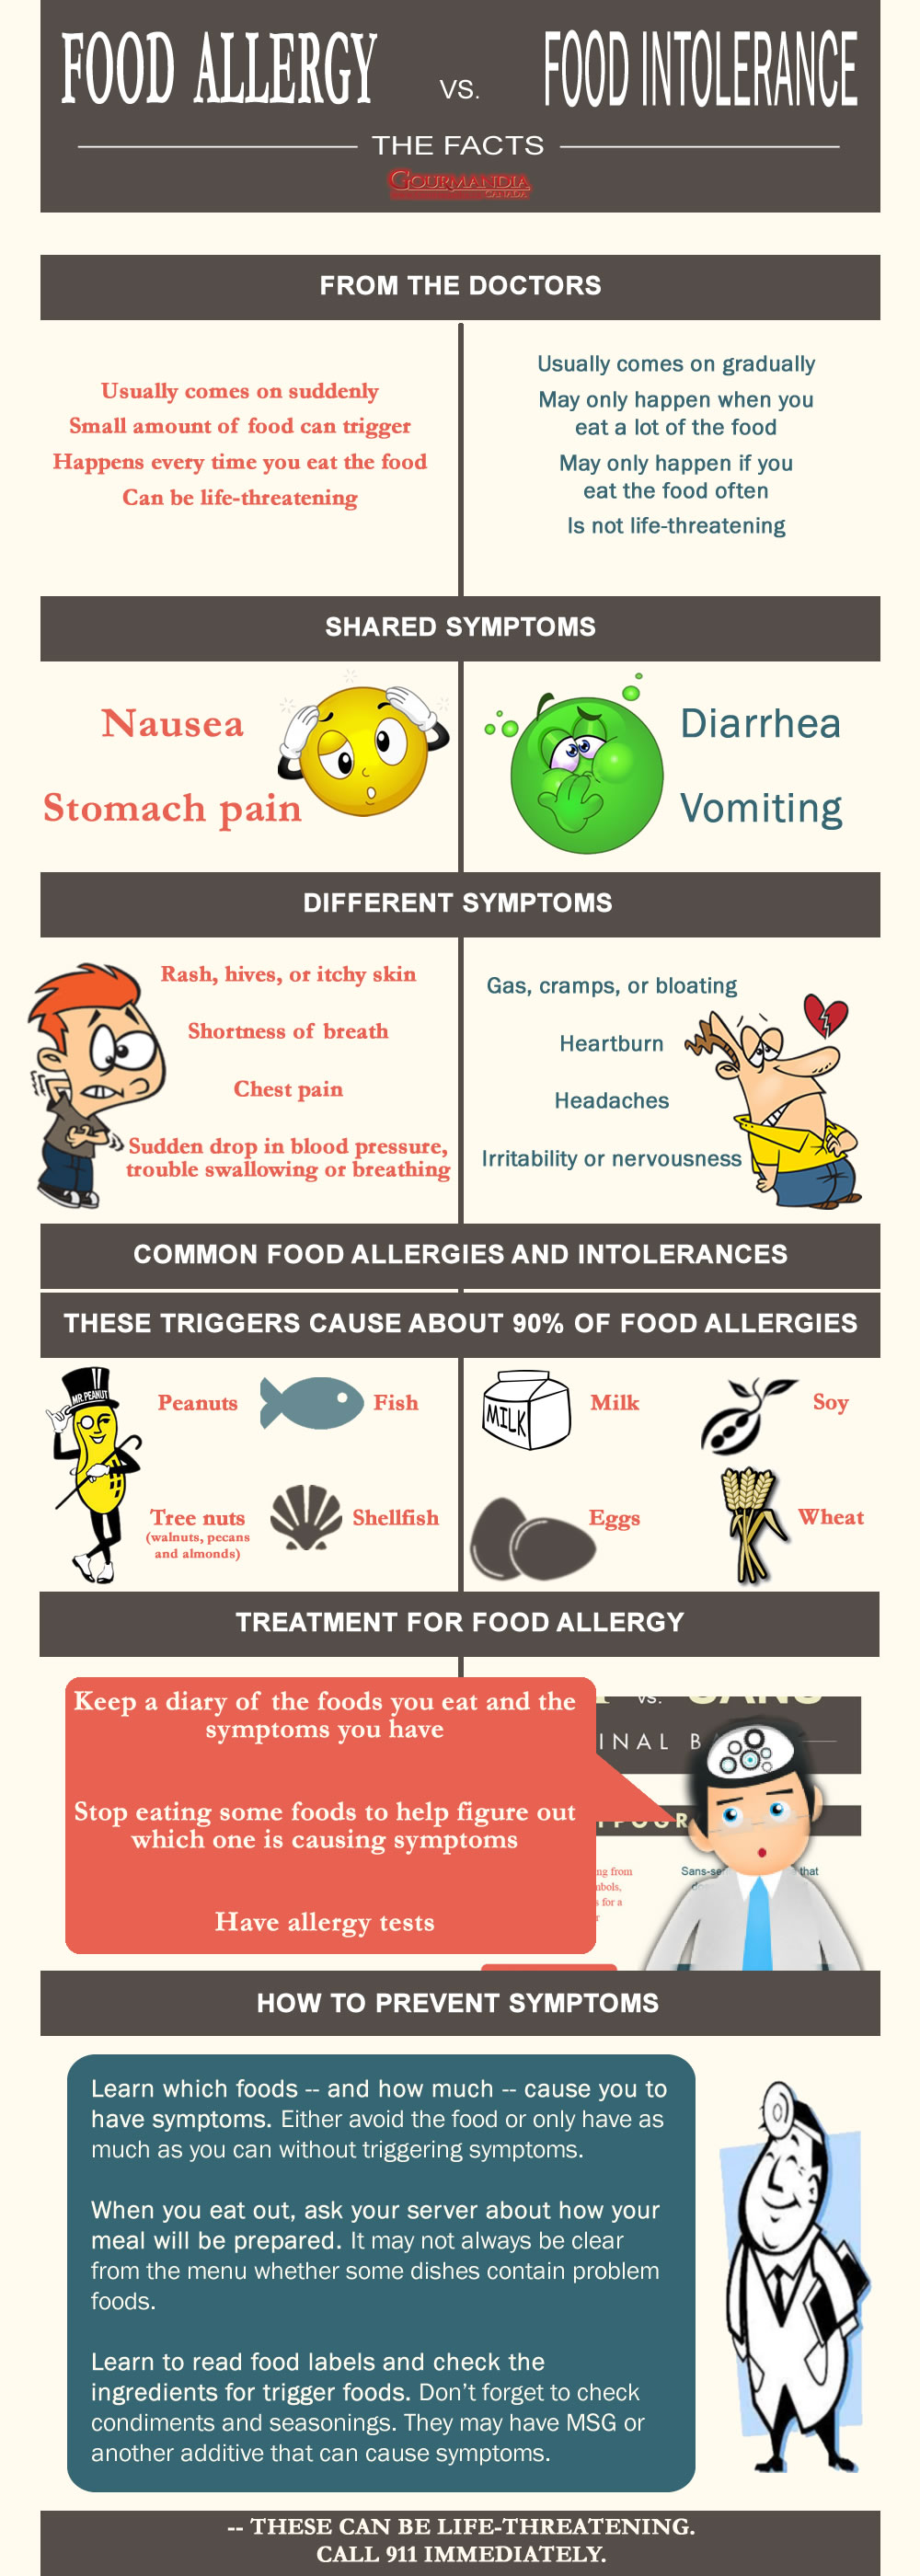 Comparison of Food Allergy and Food Intolerance